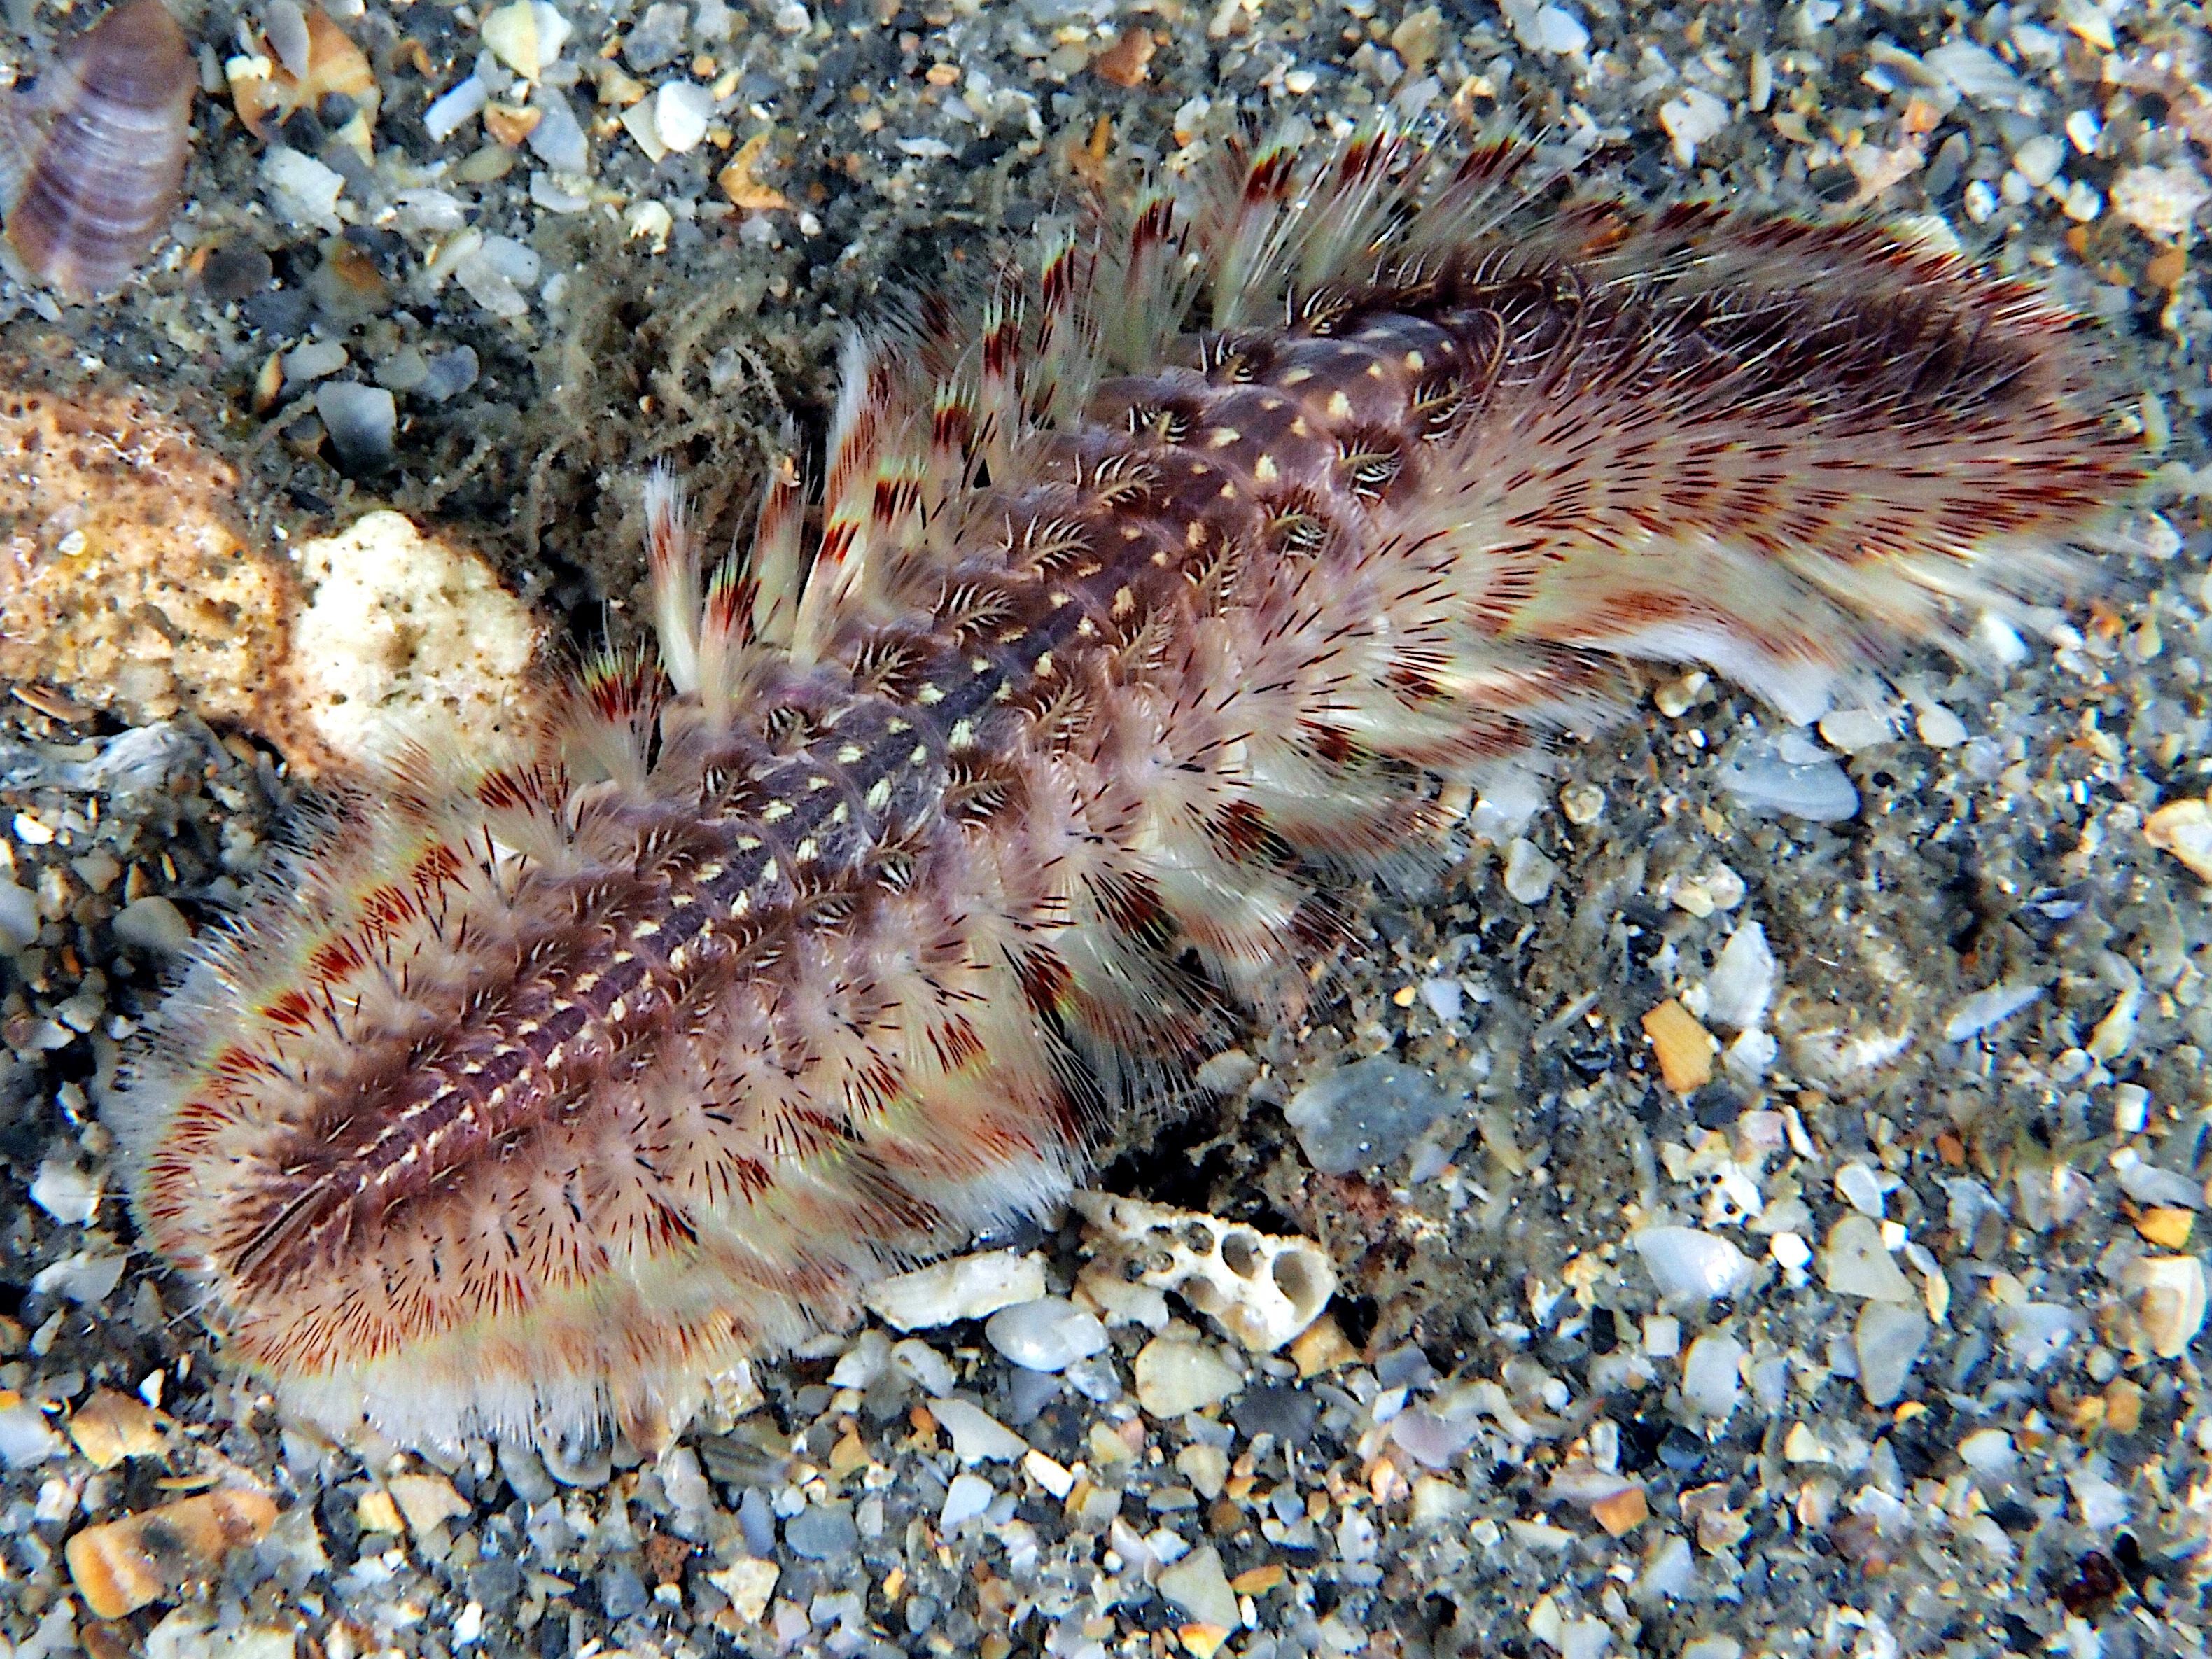 White-Spotted Fireworm - Chloeia sp.